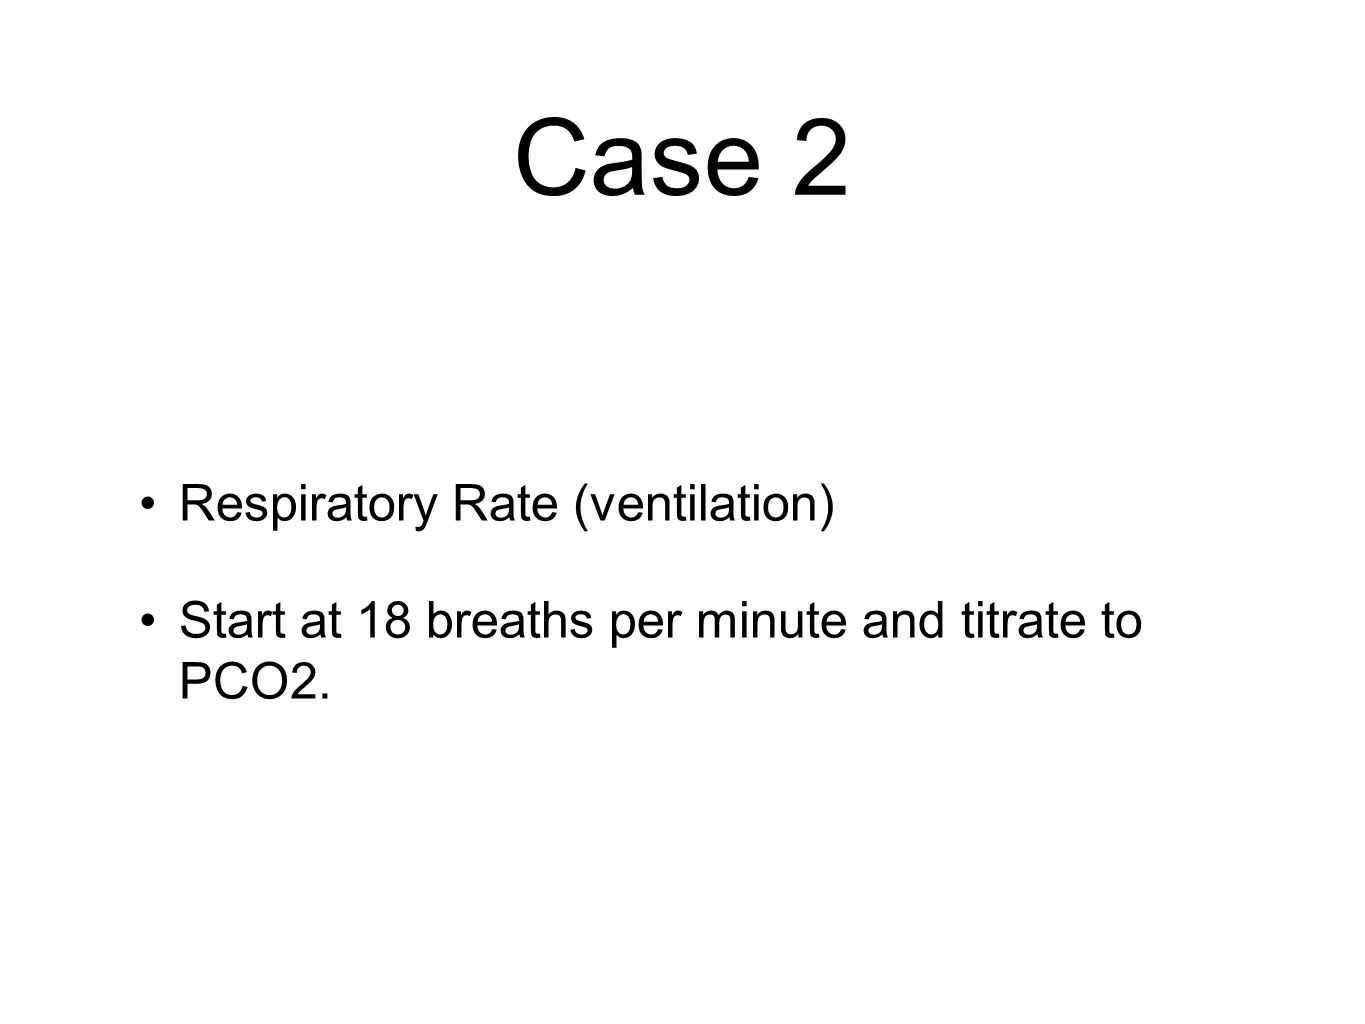 Case 2 Respiratory Rate (ventilation) Start at 18 breaths per minute and titrate to PCO2.